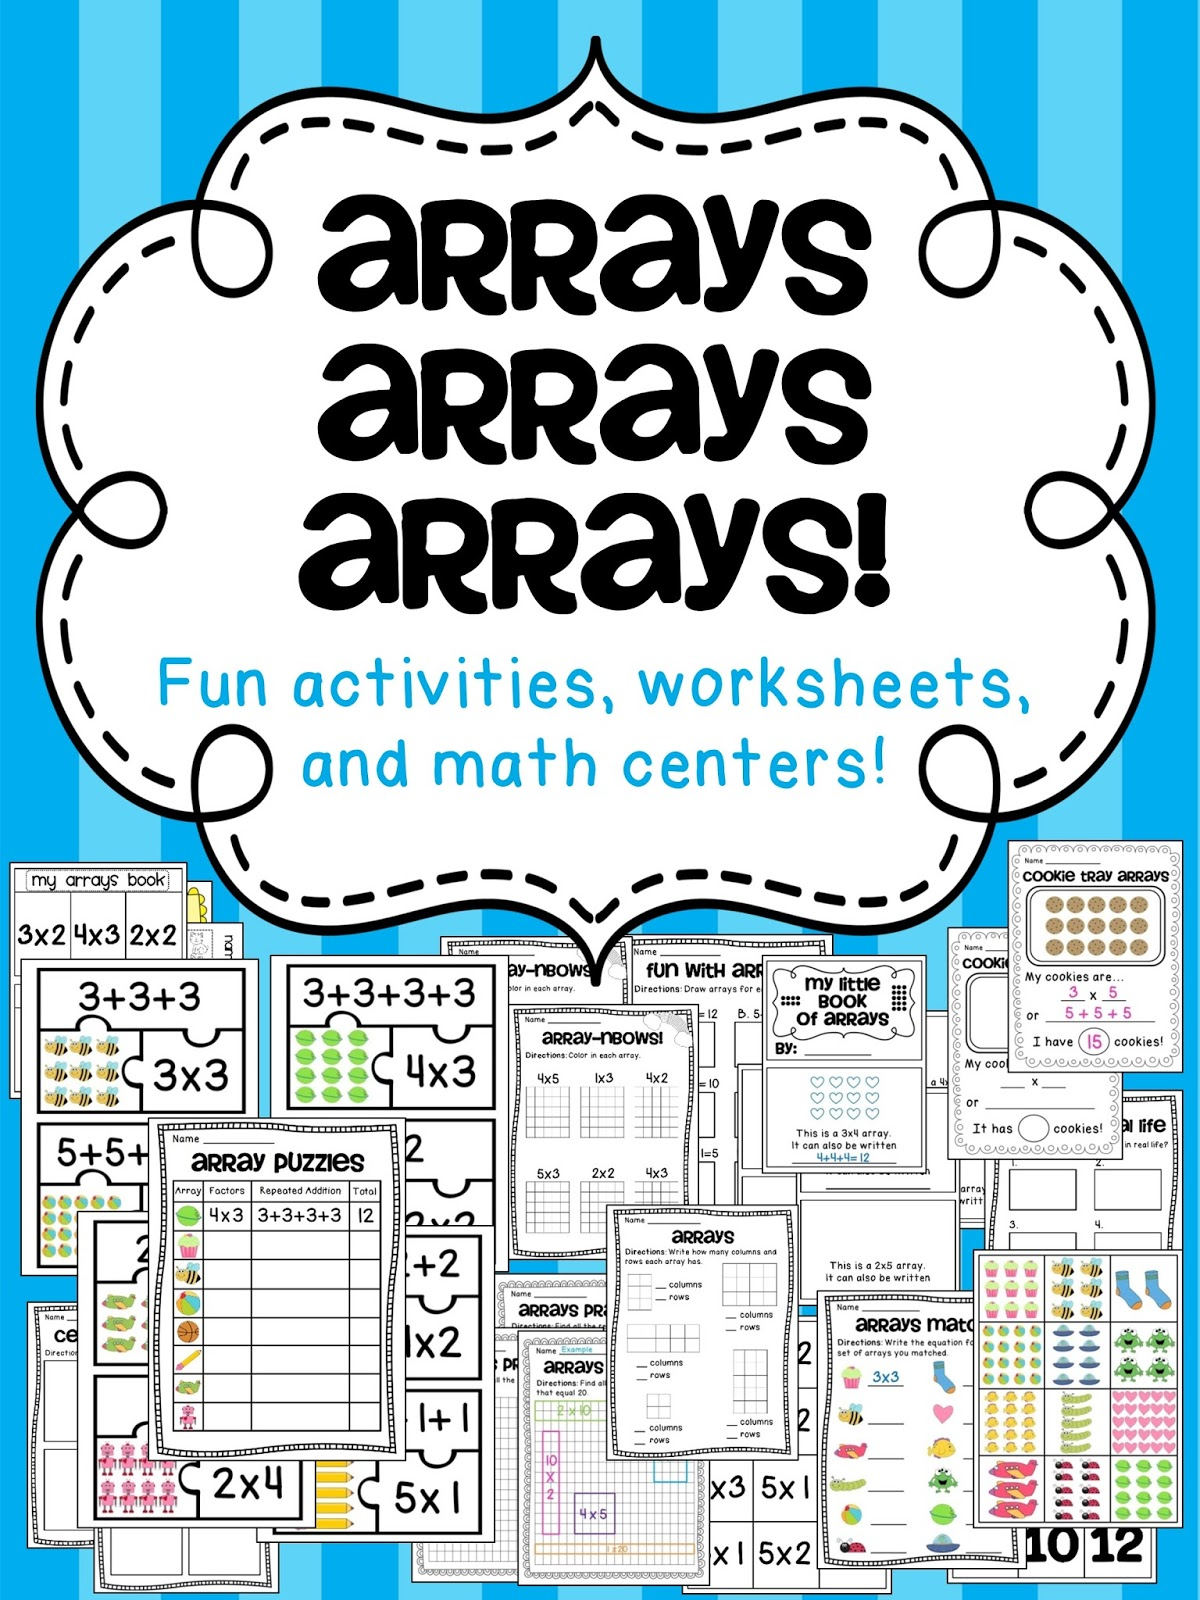 Solve multiplication problems by drawing an array